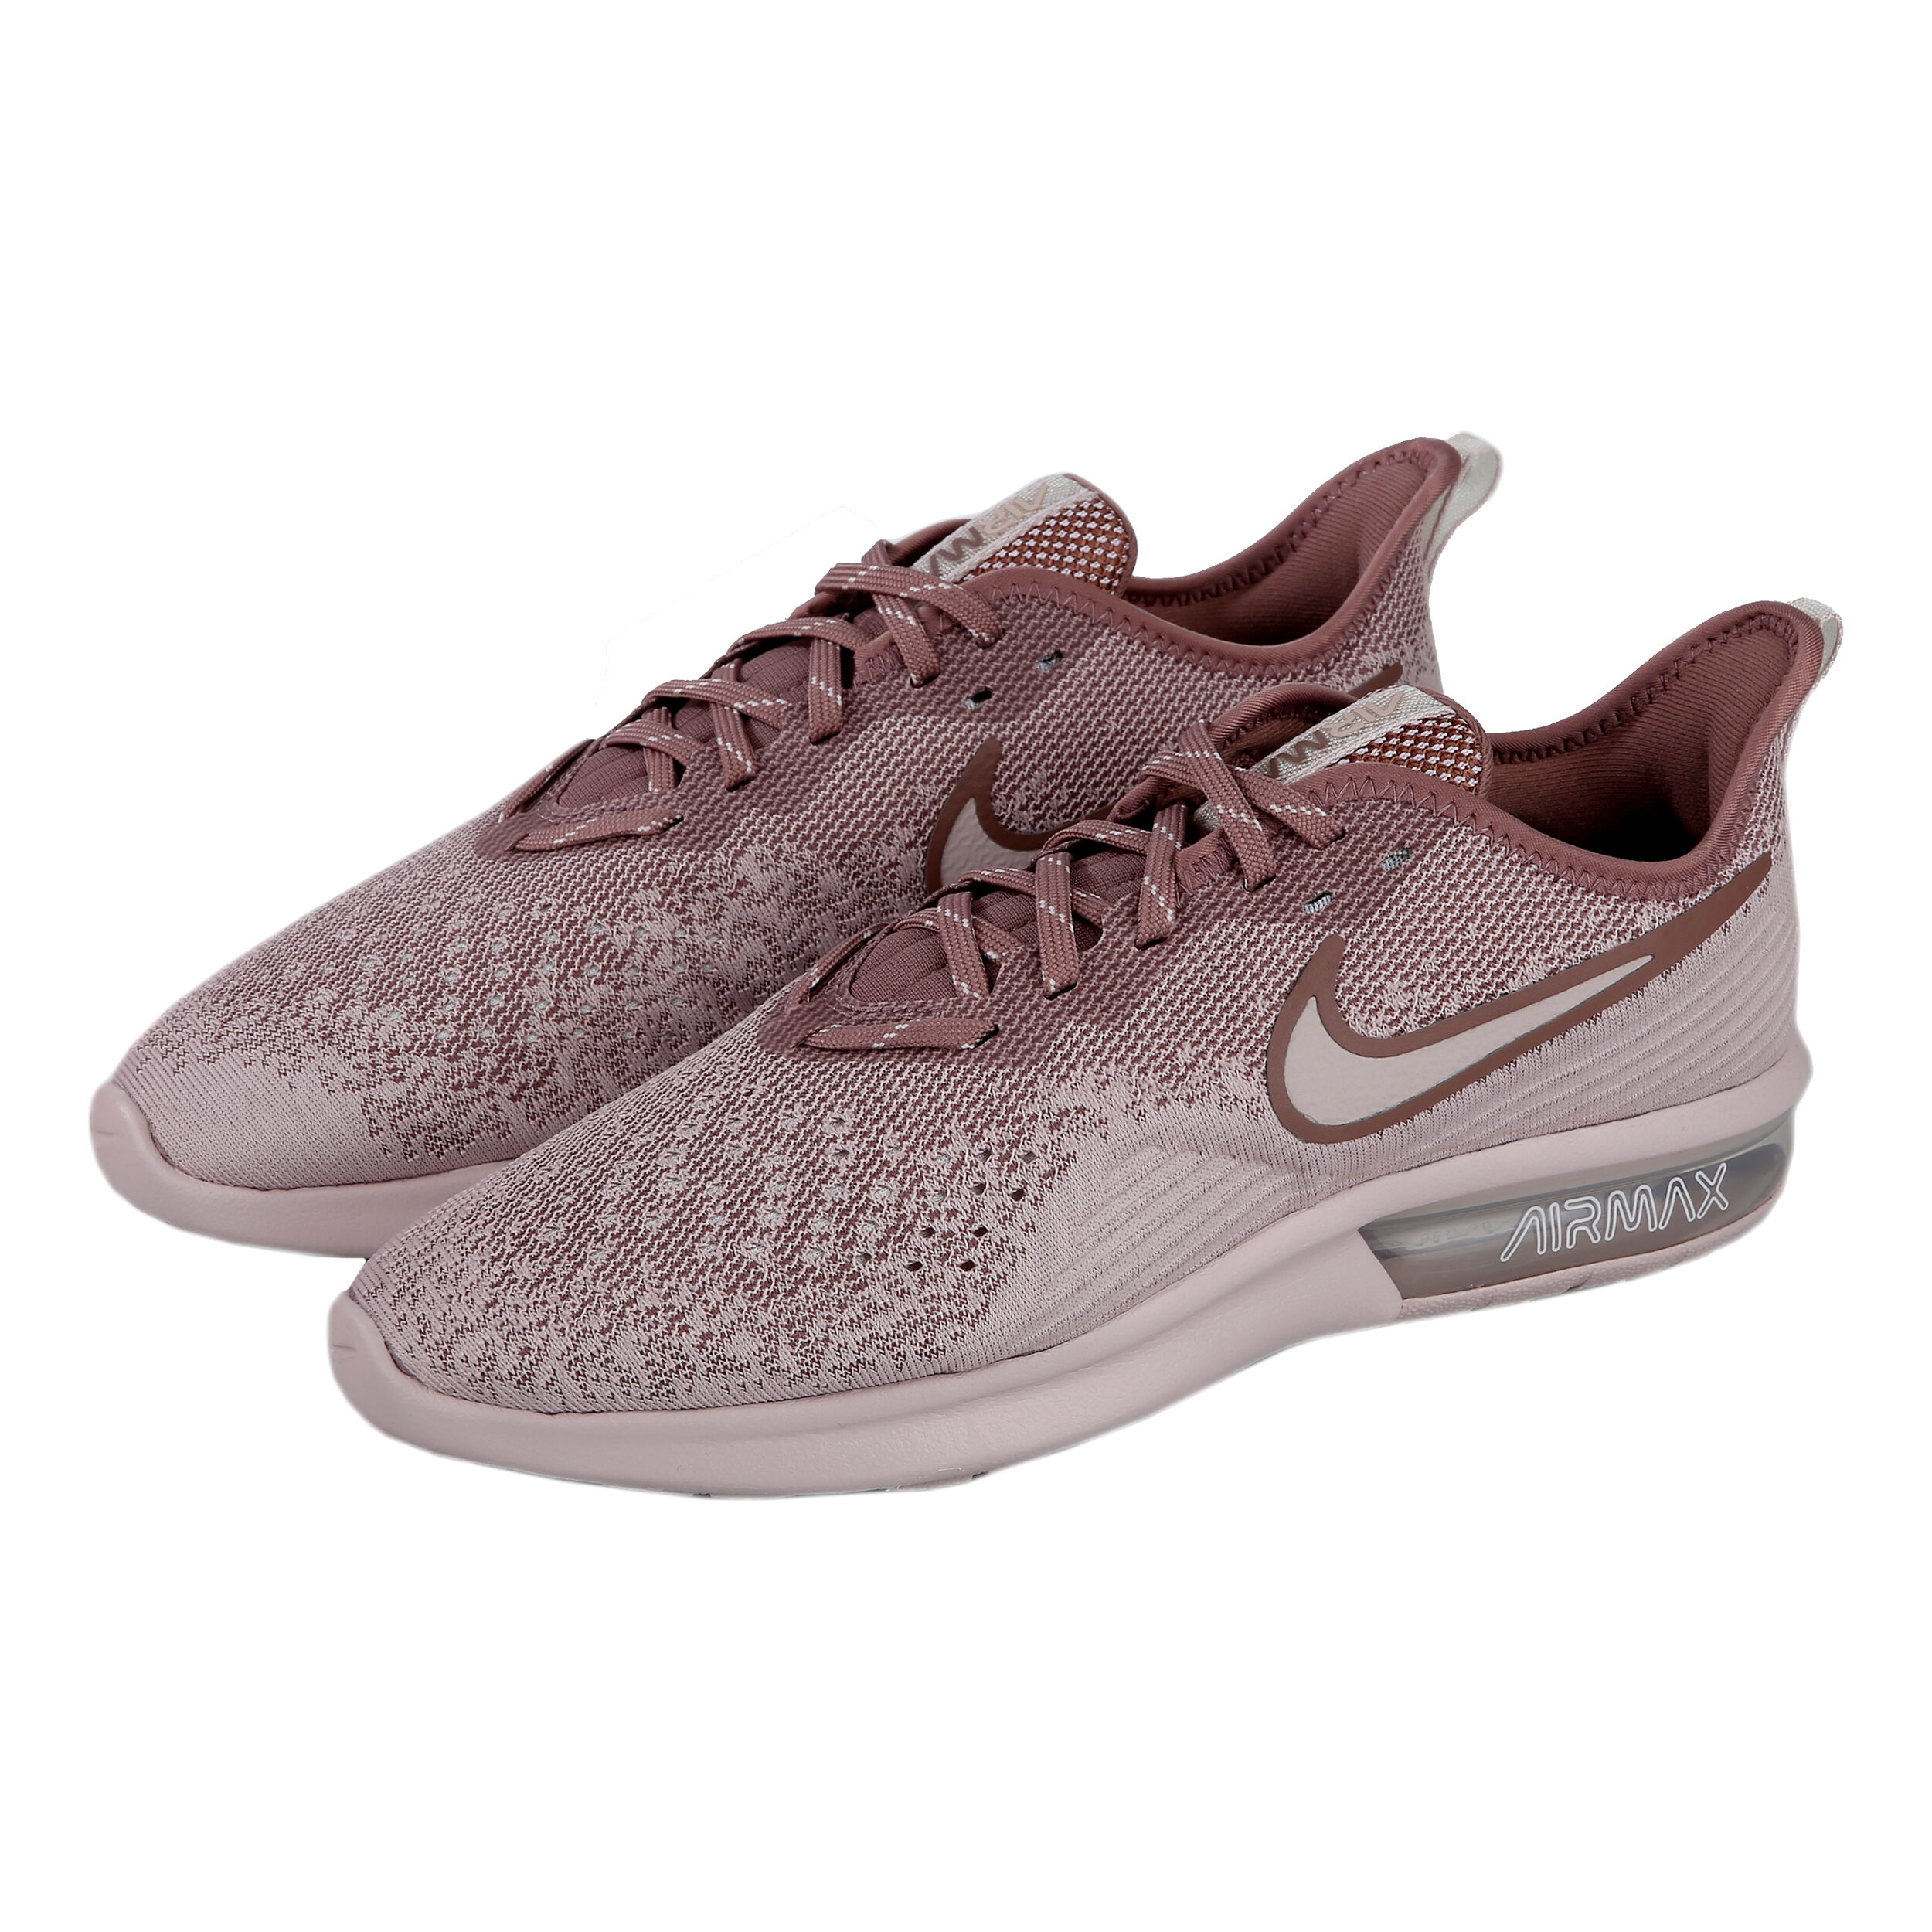 Nike Air Max Sequent 4 Neutral Running Shoe Women Pink, White